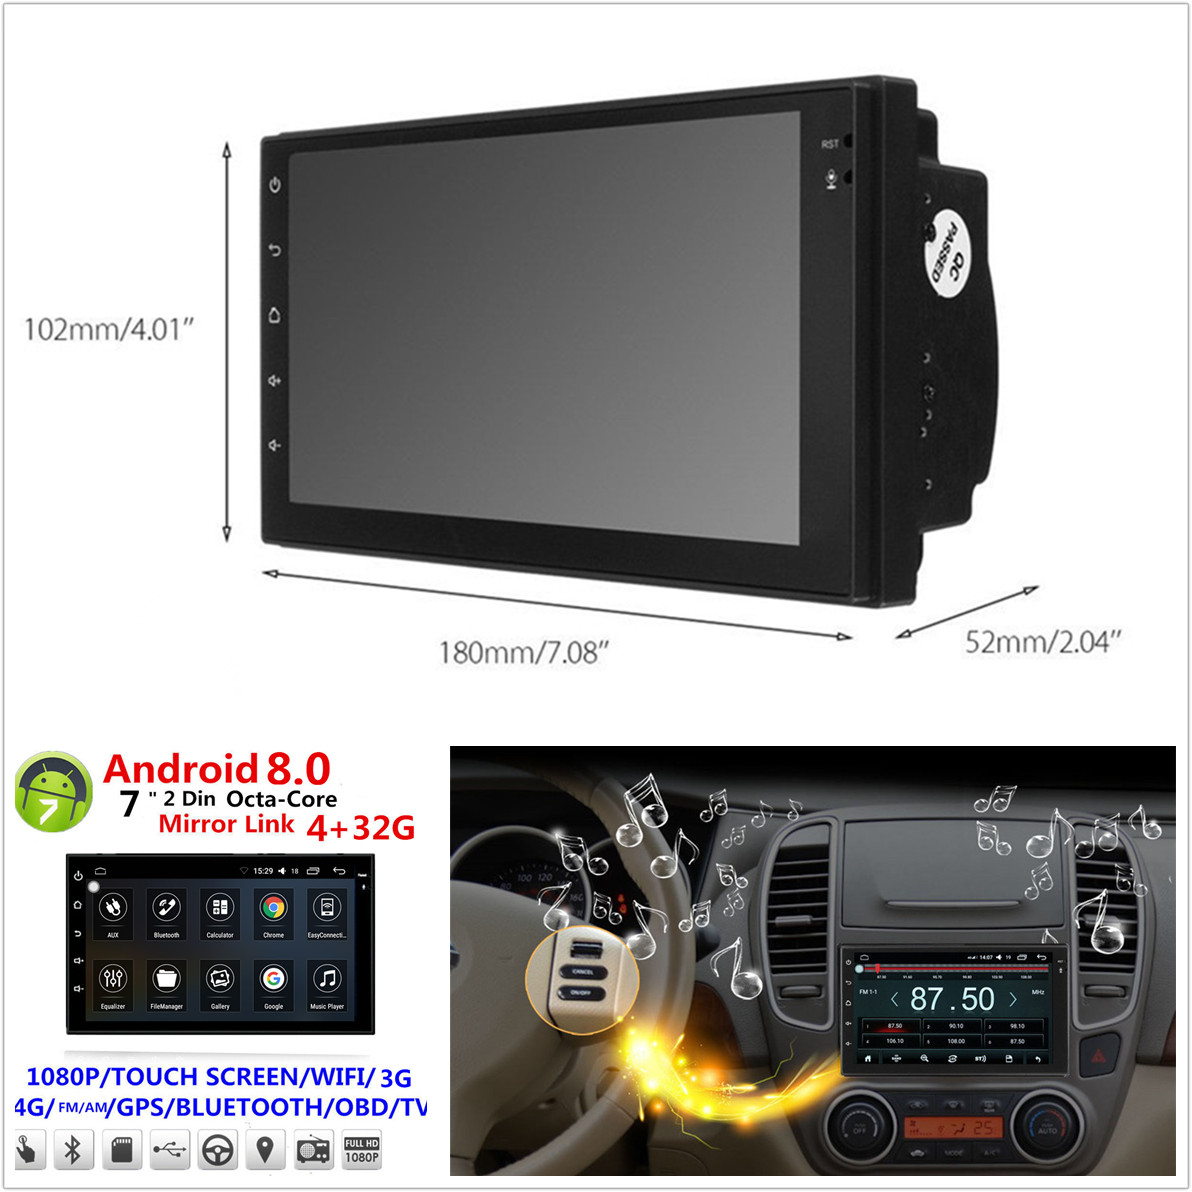 7 Android 80 2 Din Octa Core 4g 32g Car Stereo Radio Gps Wifi 3g Smartphone Venera Volt 3 Product Description